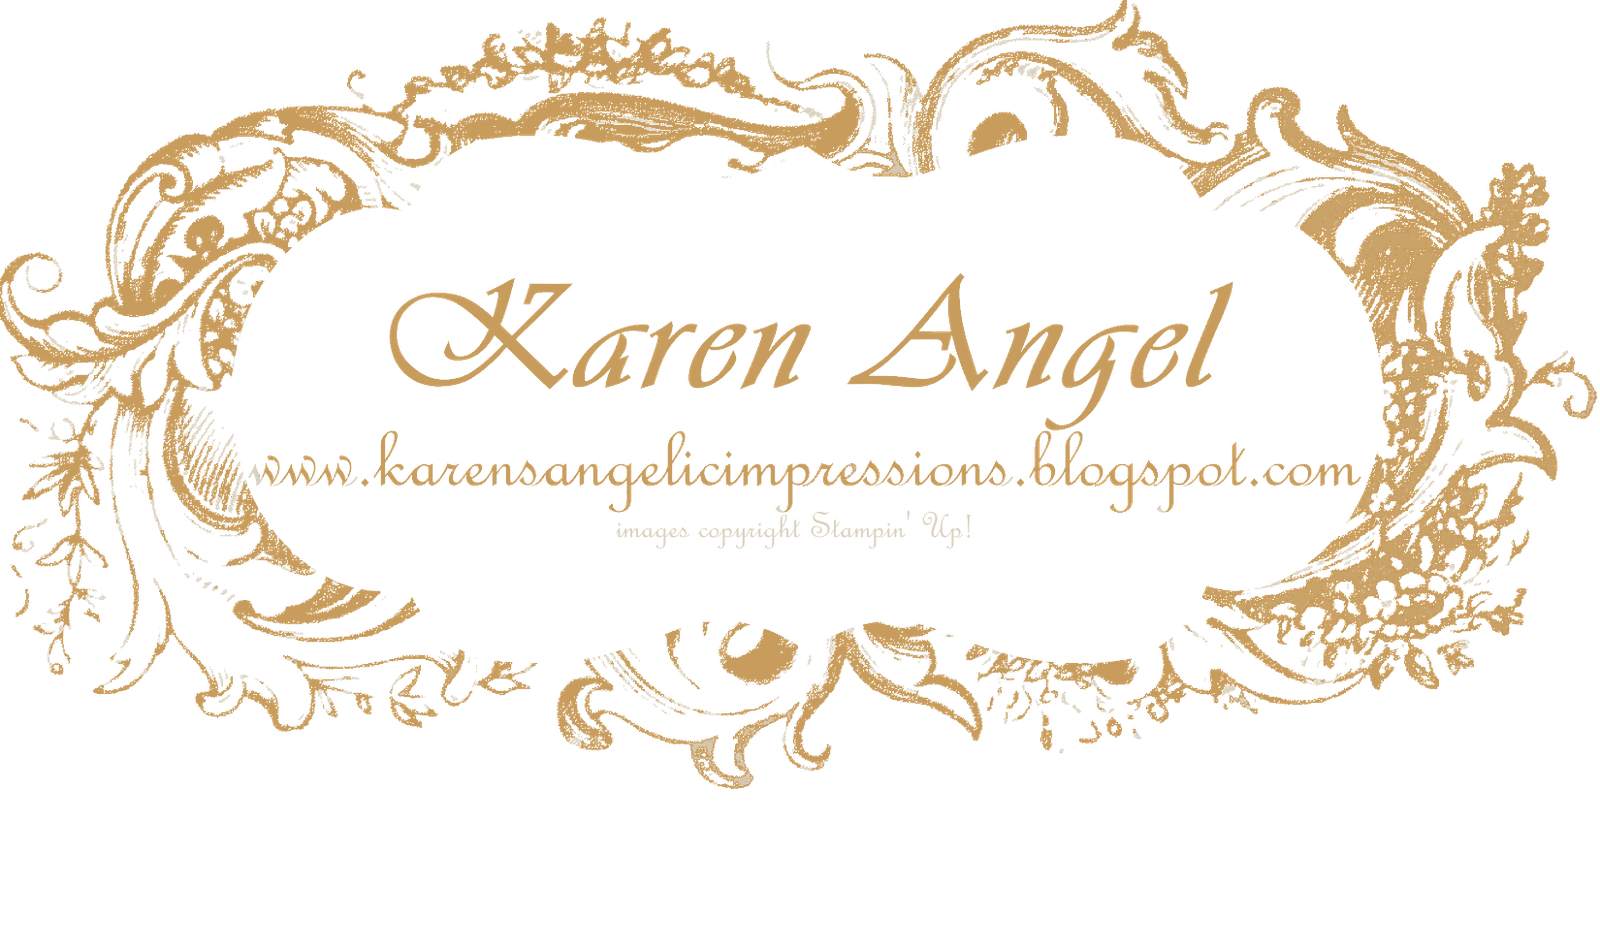 37th Wedding Anniversary Gifts: Karen's Angelic Impressions: Celebrating Our 37th Wedding